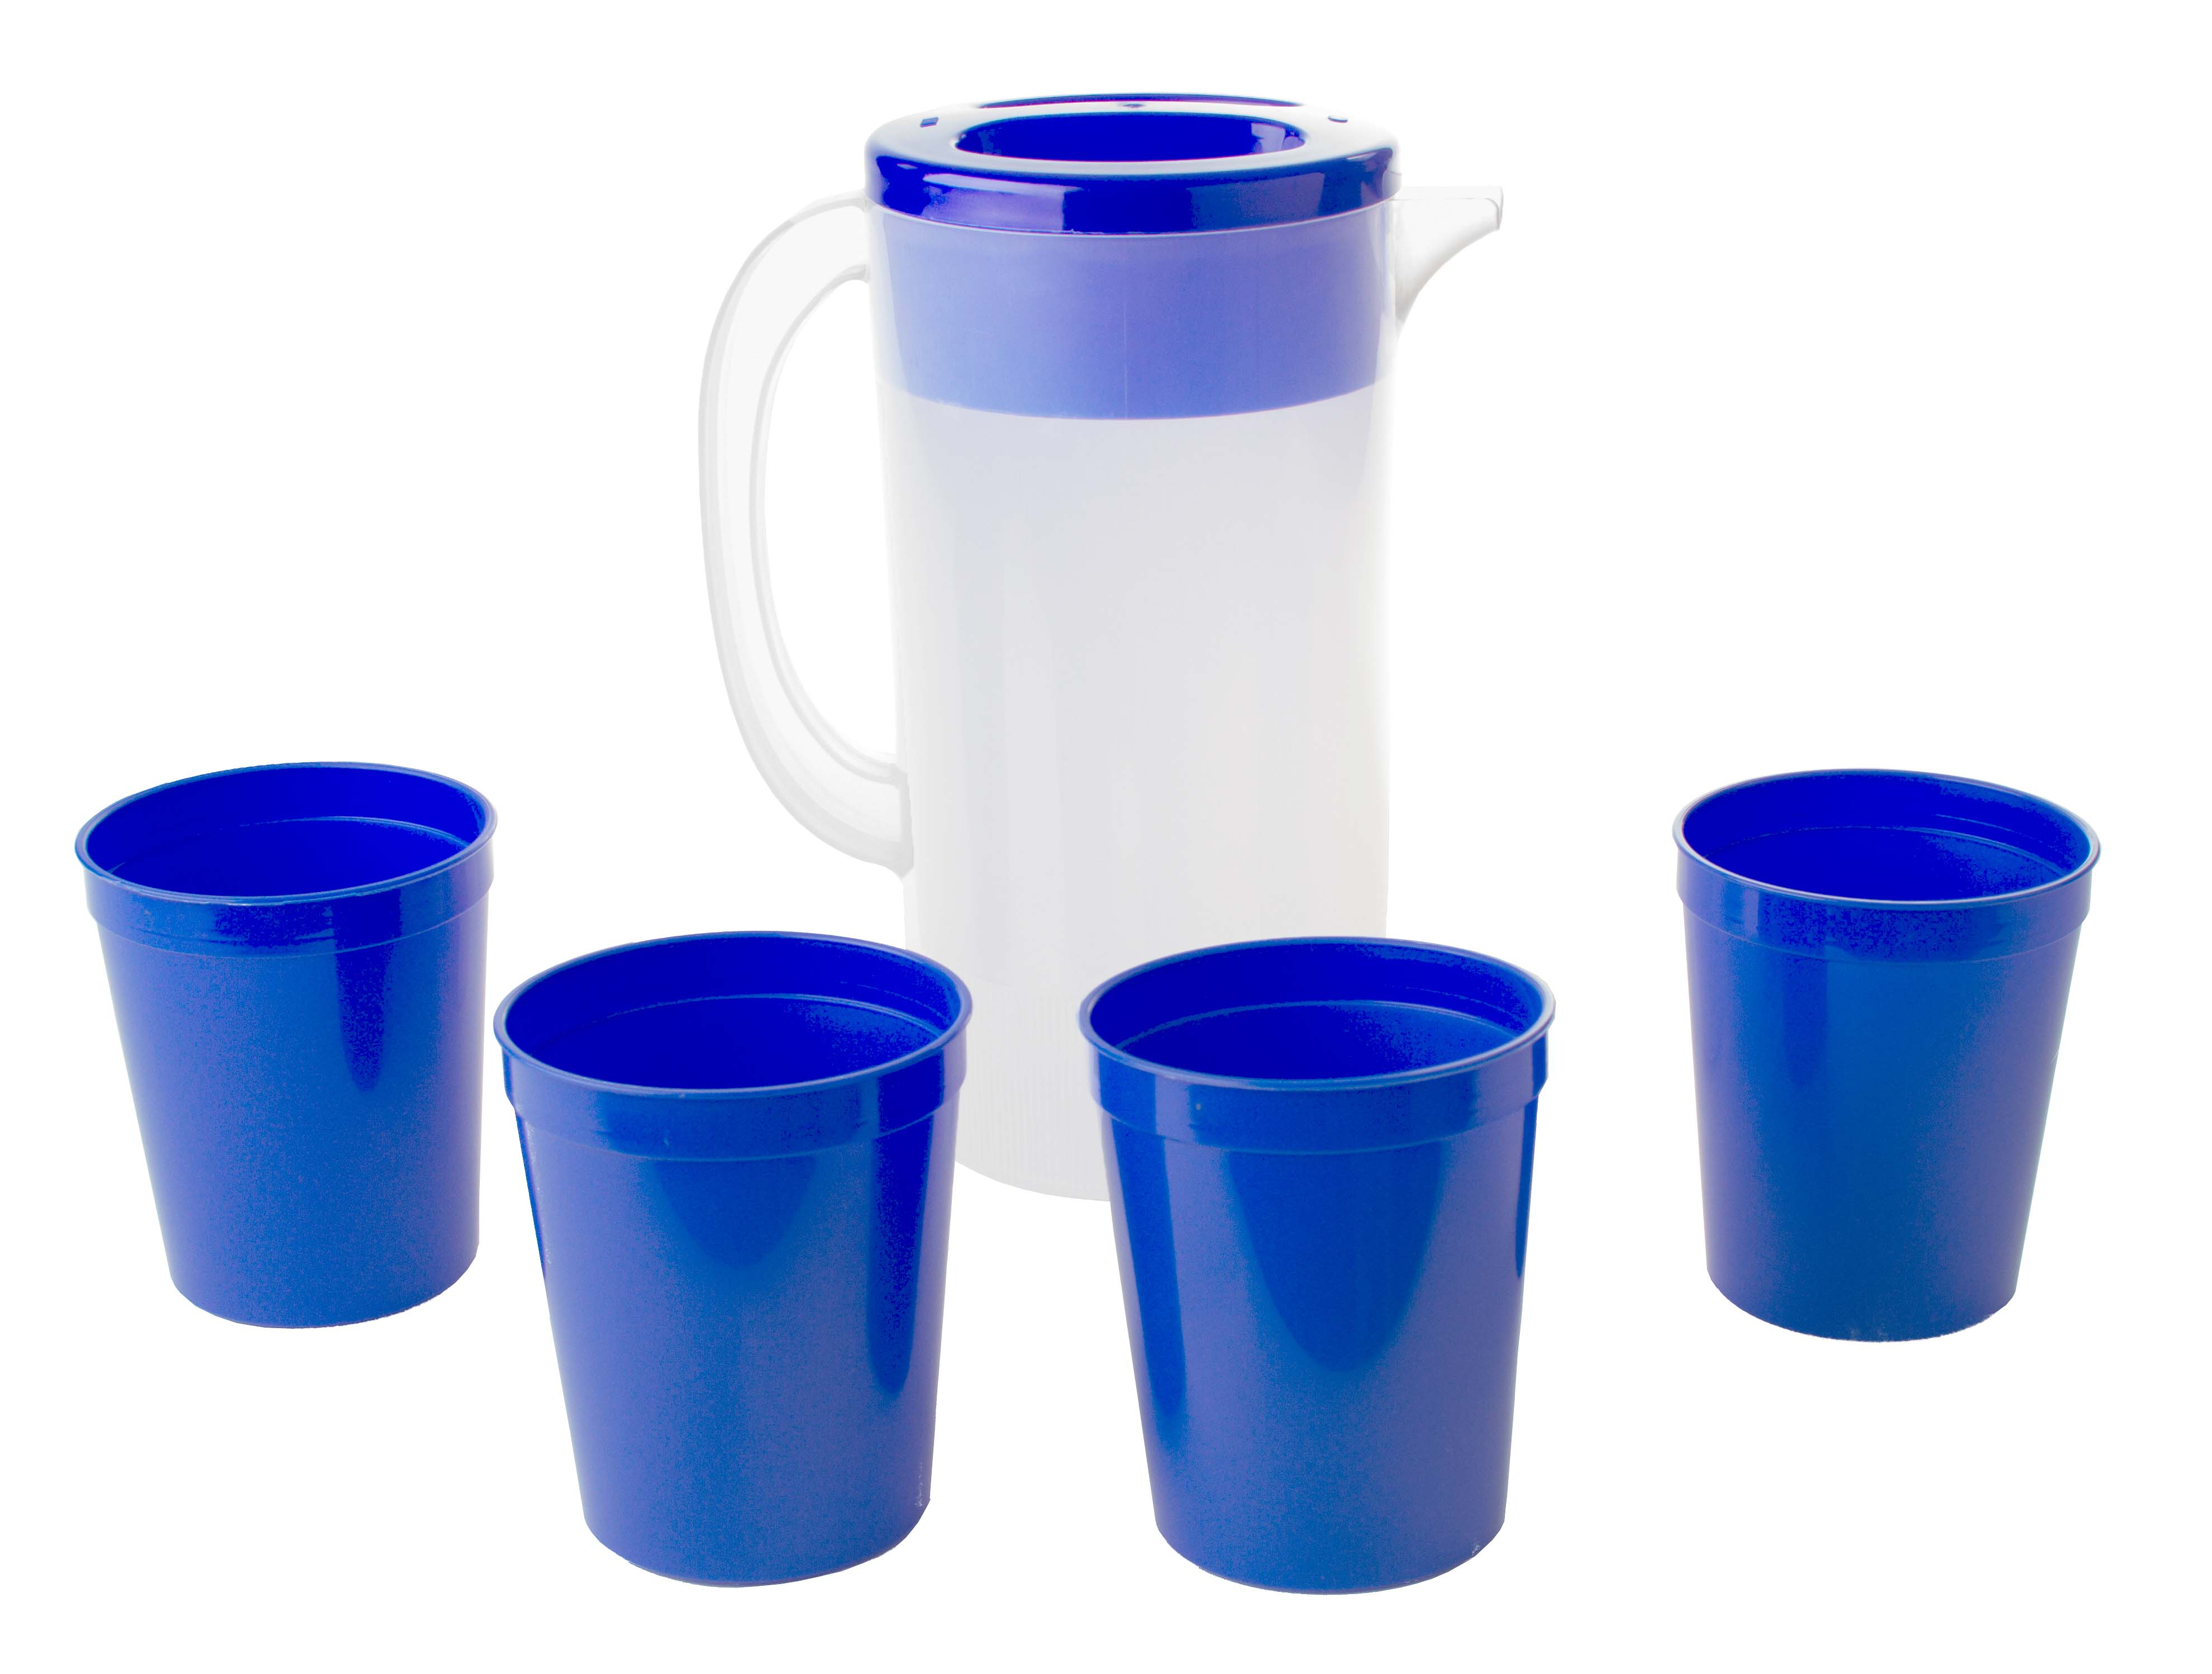 Reusable Plastic Pitcher or Water Pitcher Combo Set w ...